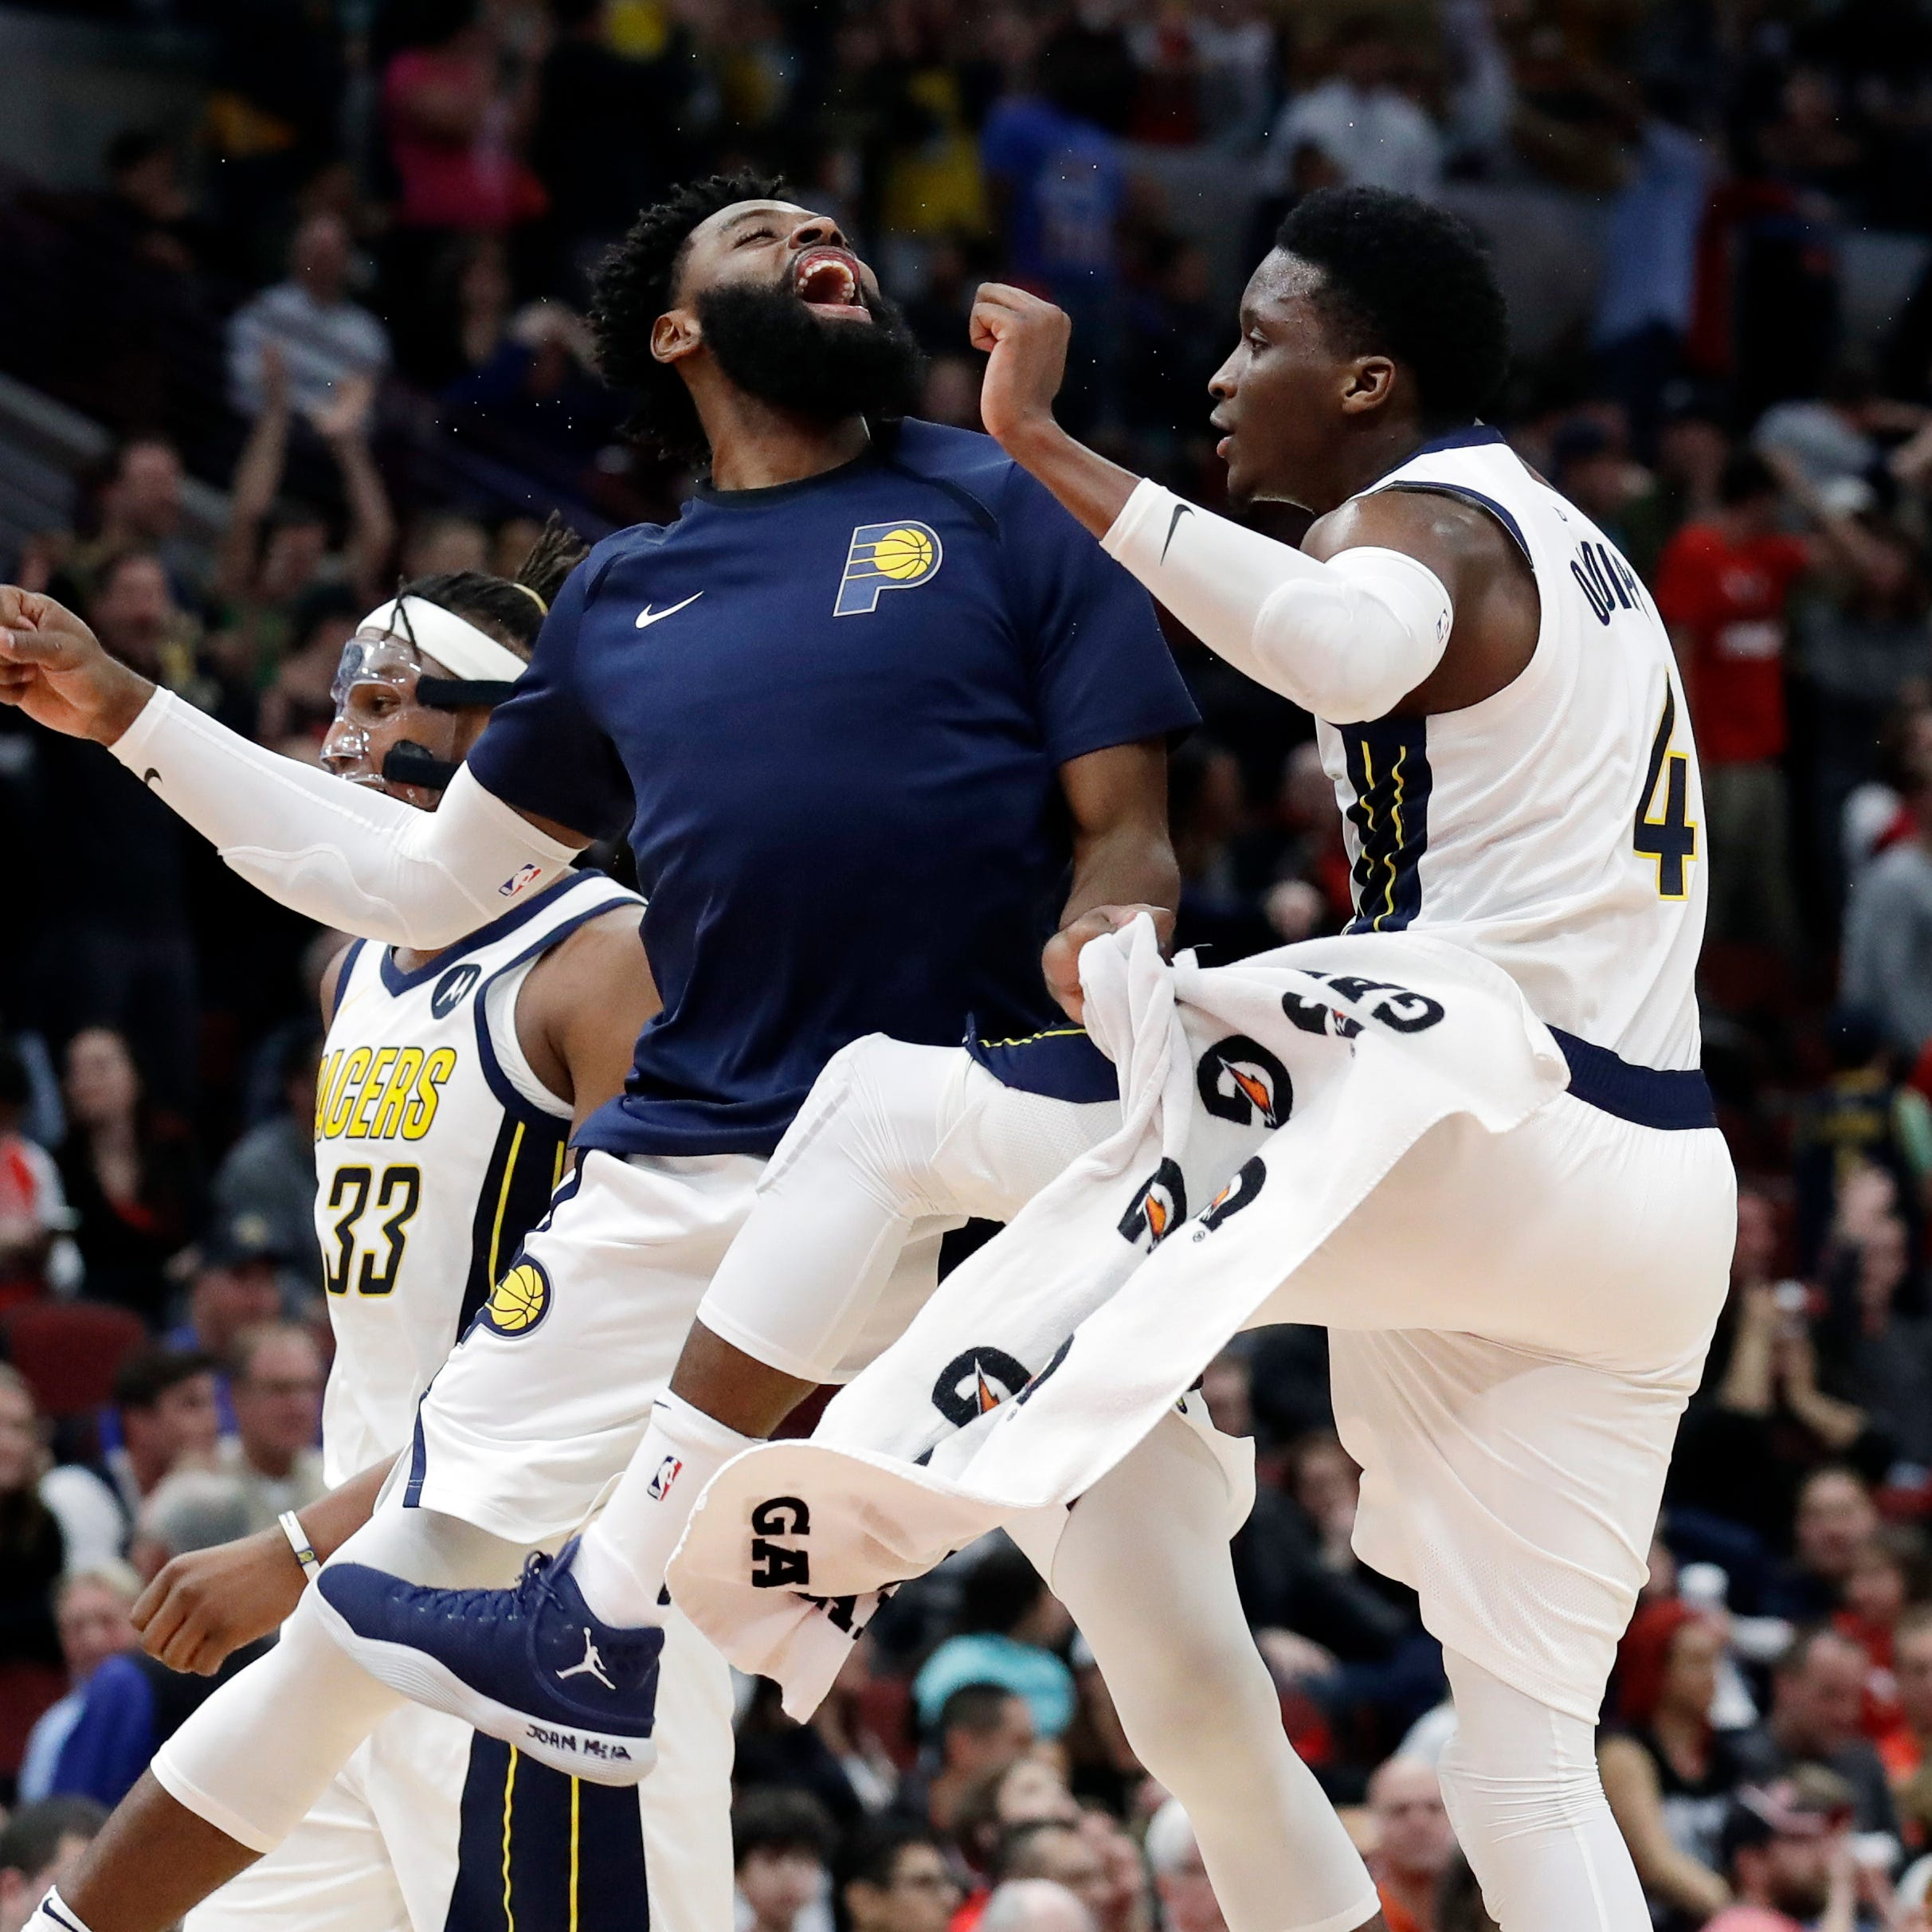 Pacers midseason report: Where they appear to be headed and what's their ceiling